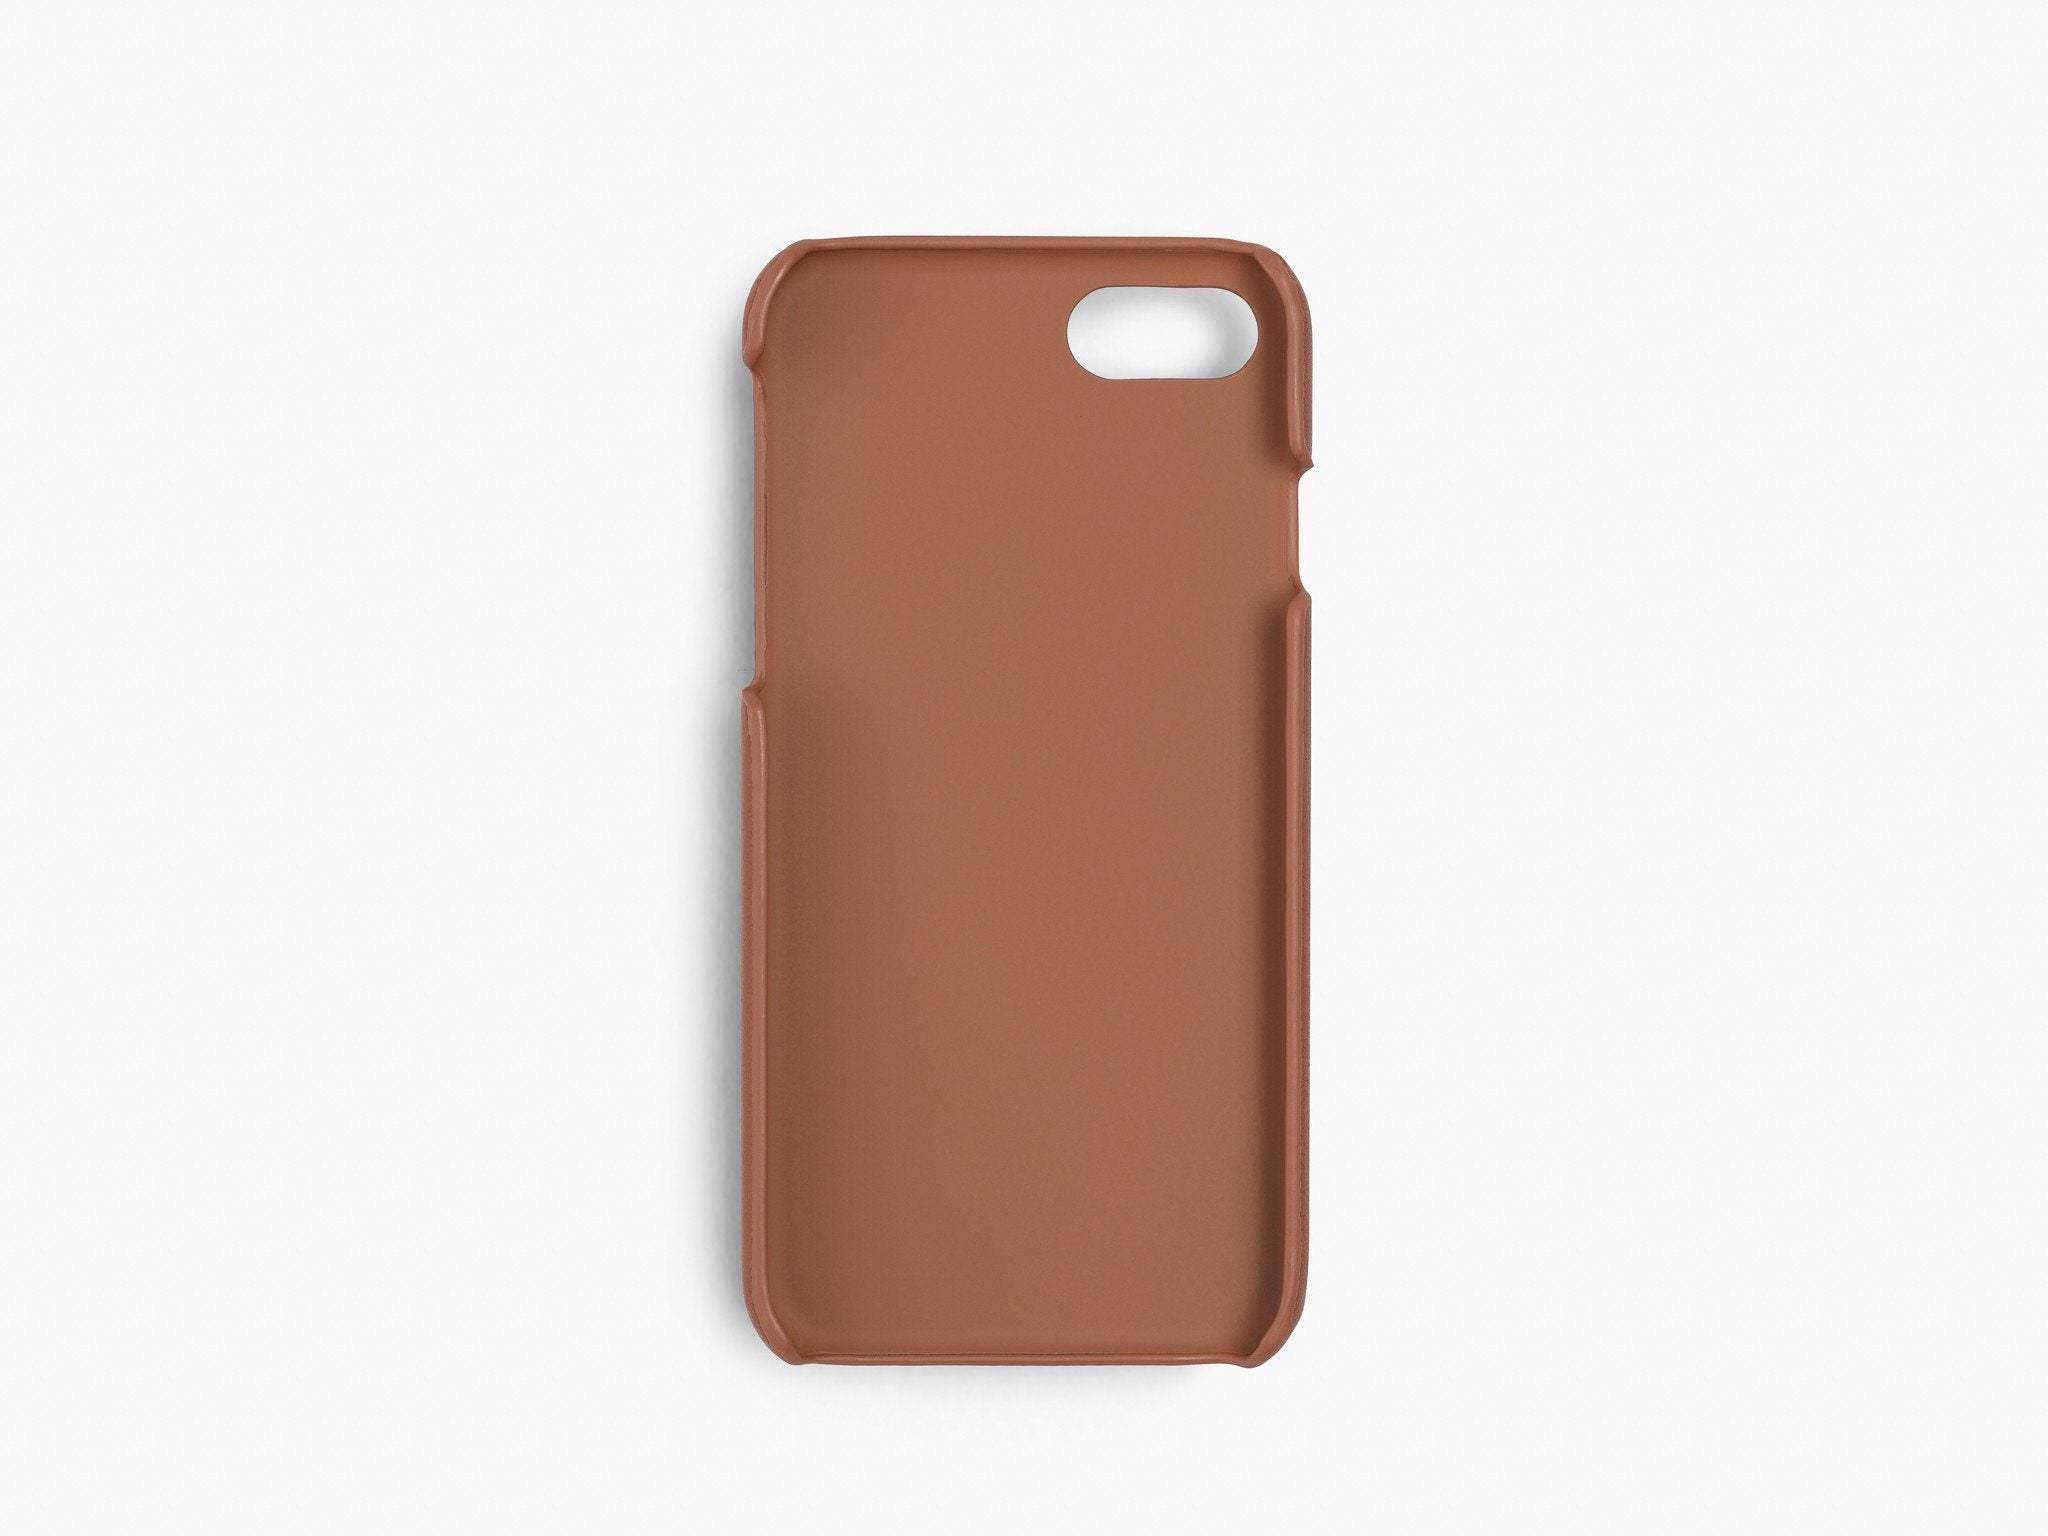 CALFSKIN iPHONE CASE CASES ANSON CALDER  !iphone8 *hover  _cognac